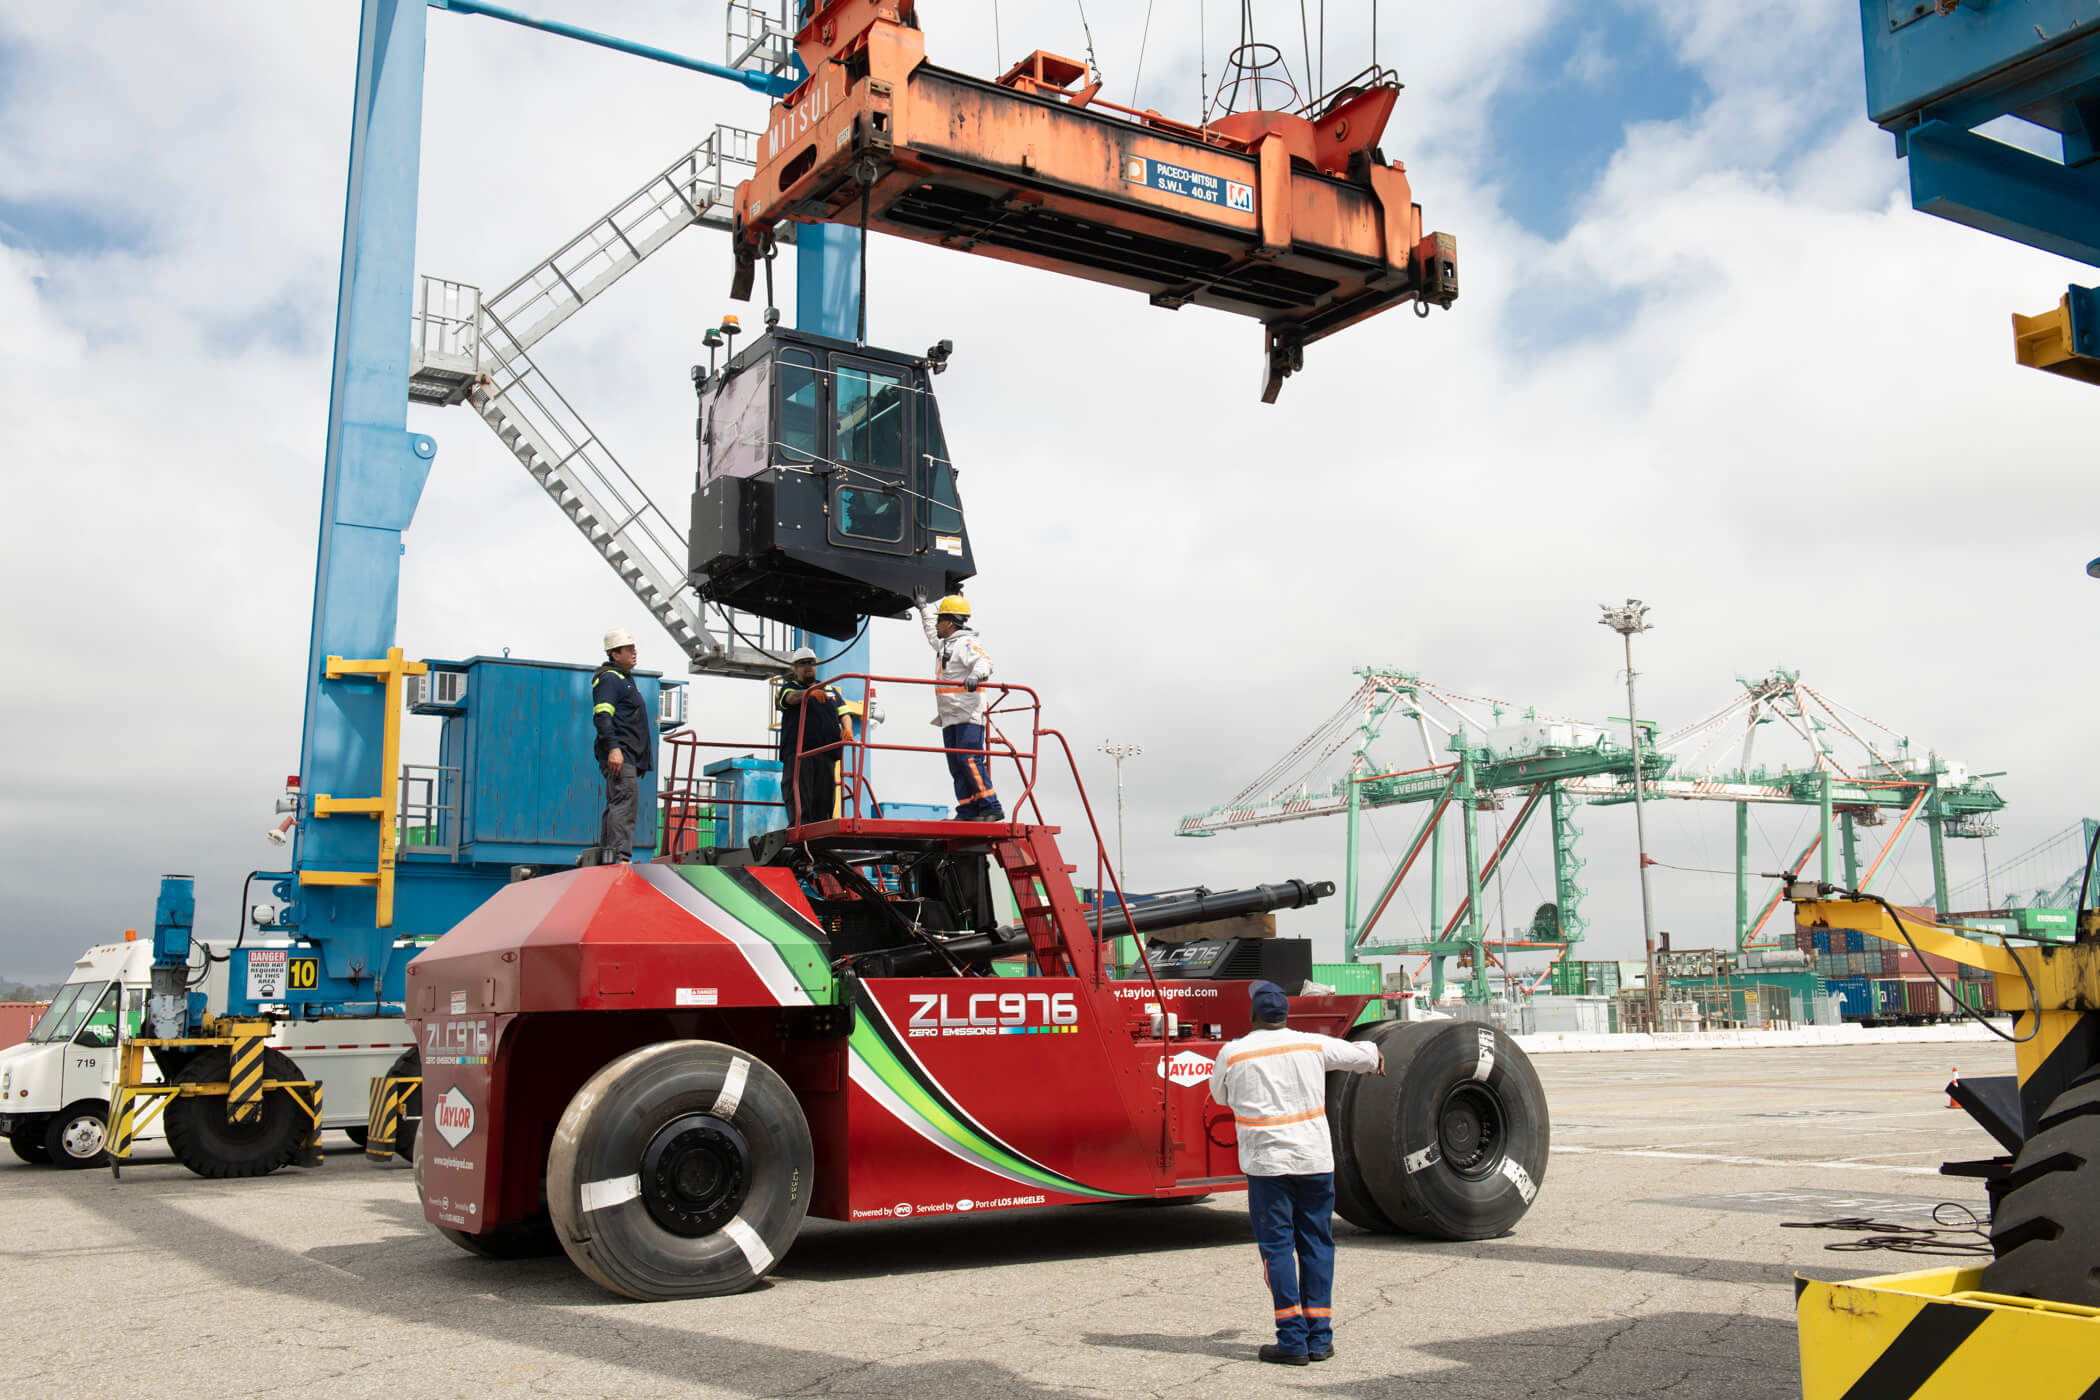 Assembling the first electric heavy lift forklift at the Port of Los Angeles. Shot for Taylor Machines